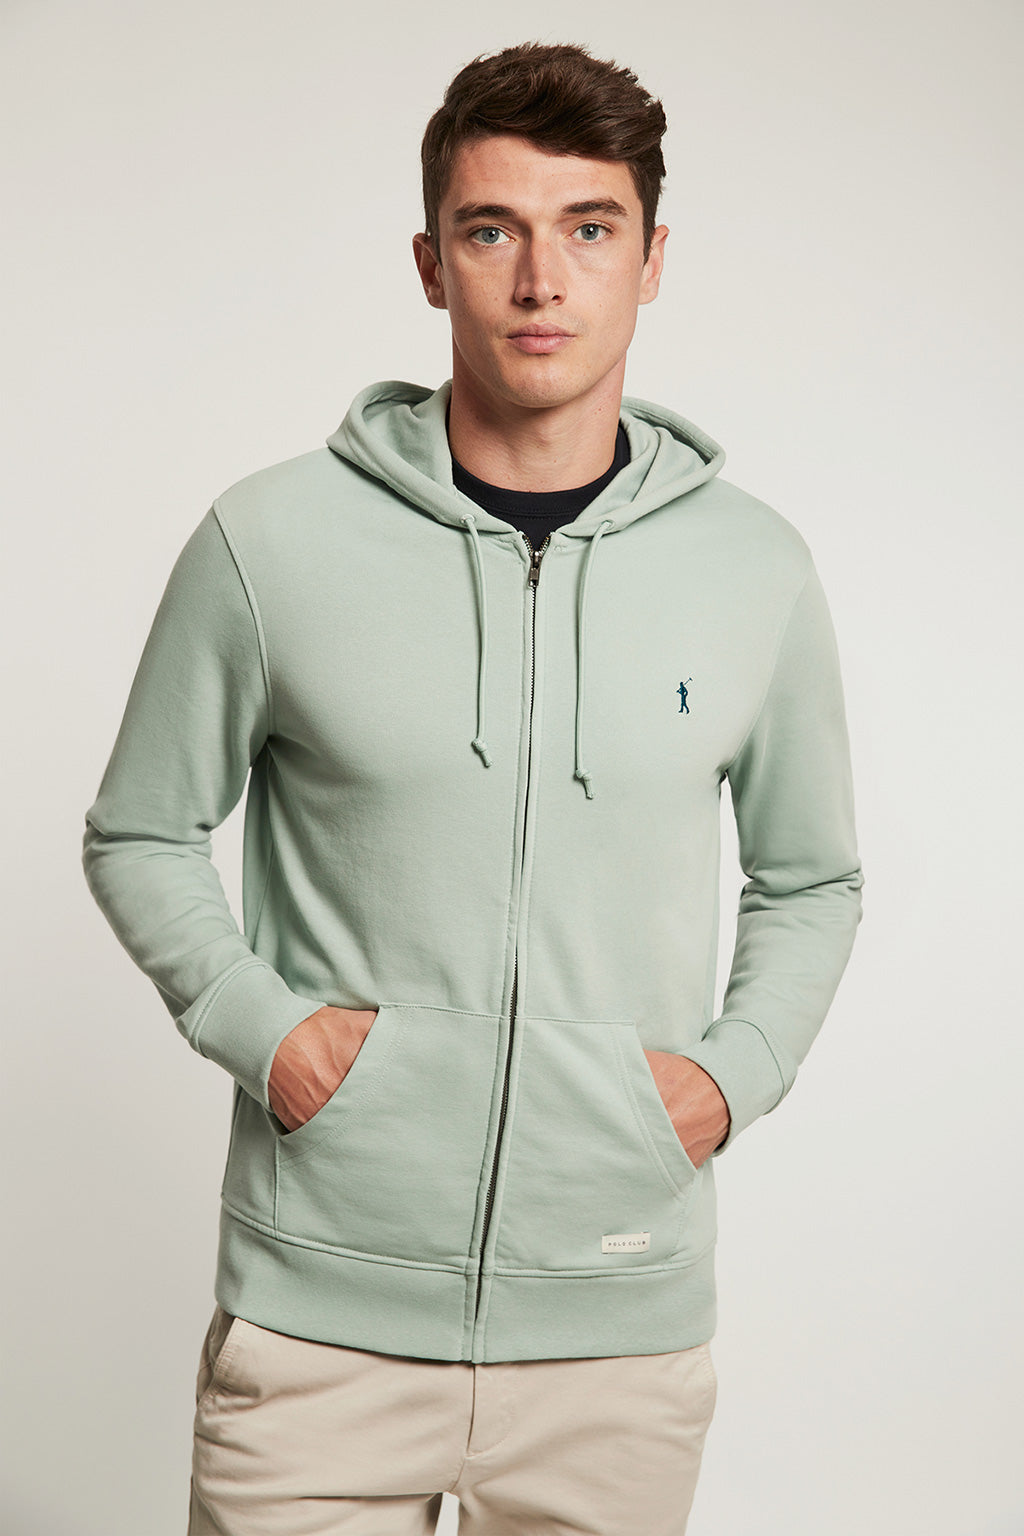 Pastel green organic sweatshirt with zip closure and contrast embroidery